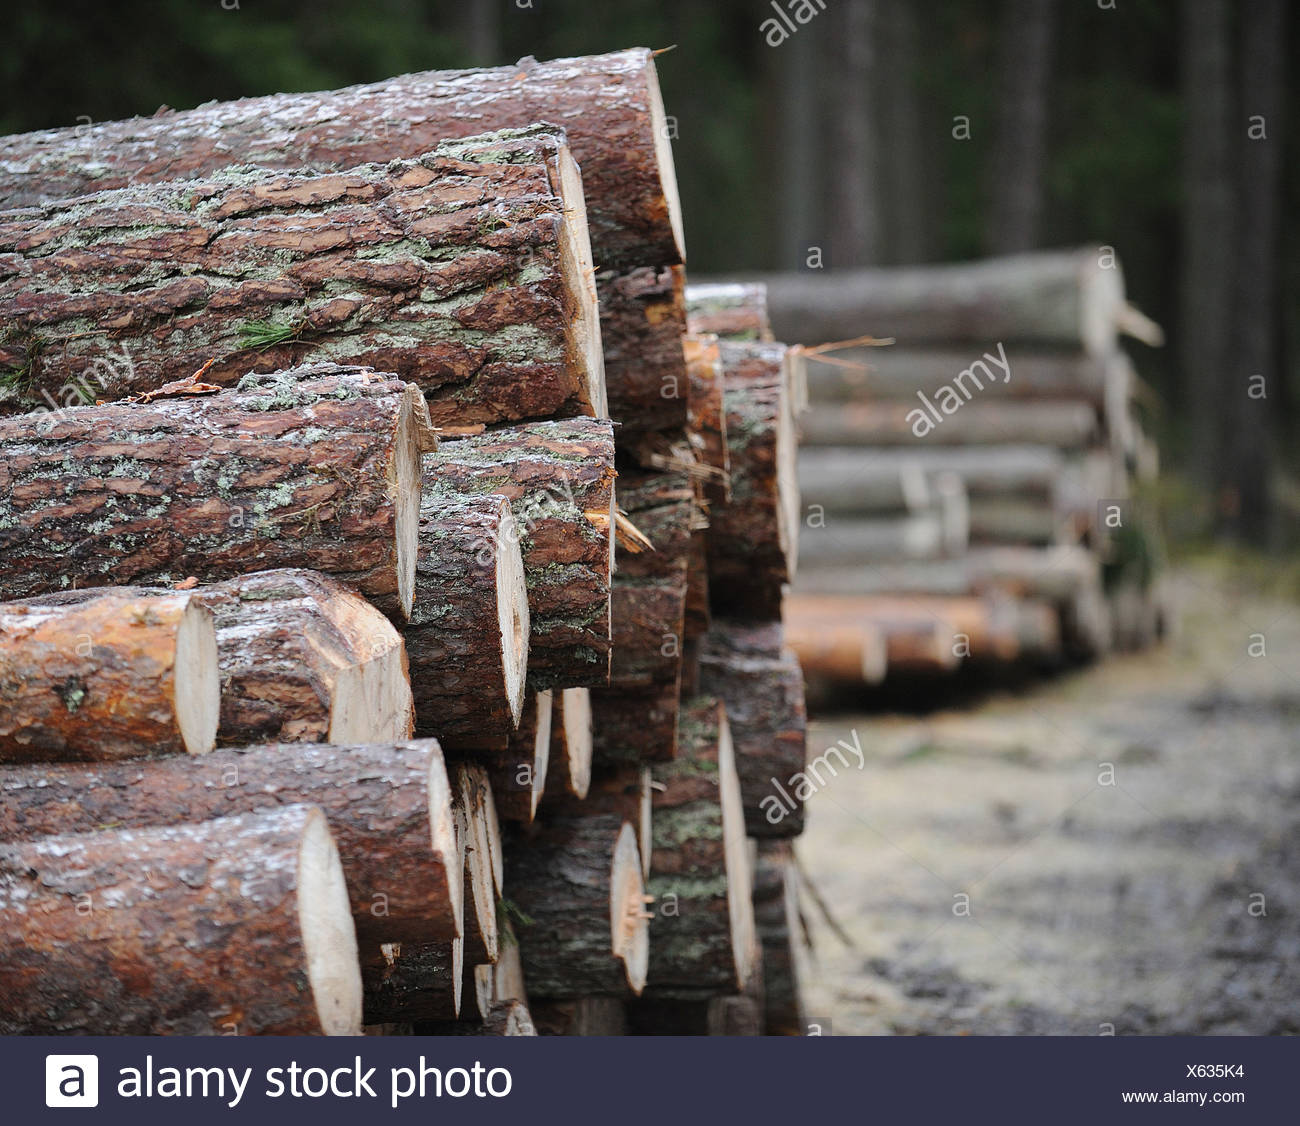 Stapled tree trunks - Stock Image